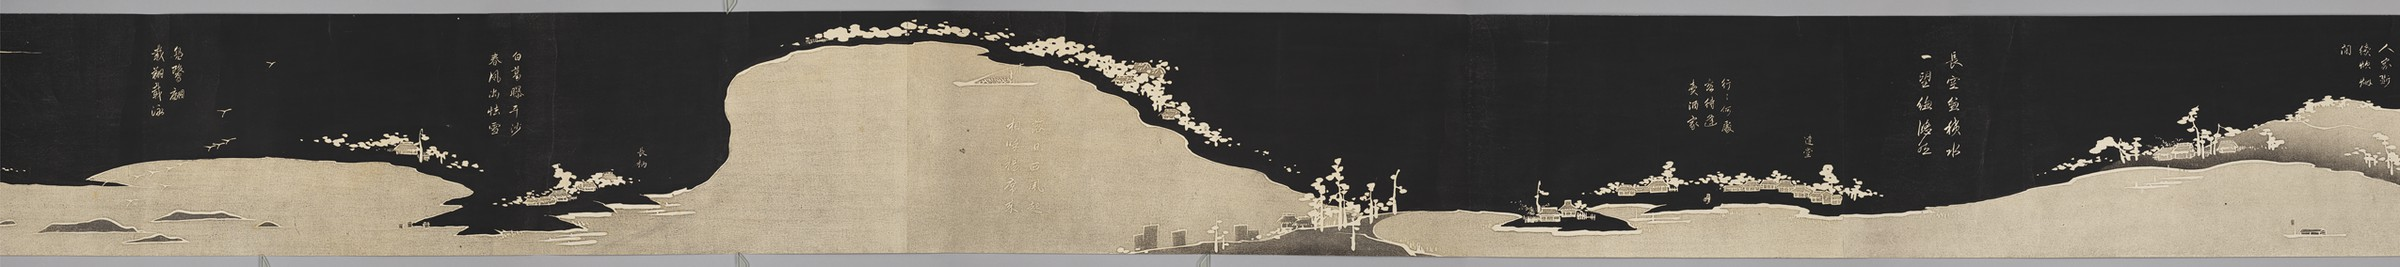 Handscroll by Itō Jakuchū featuring rivers and mountains.